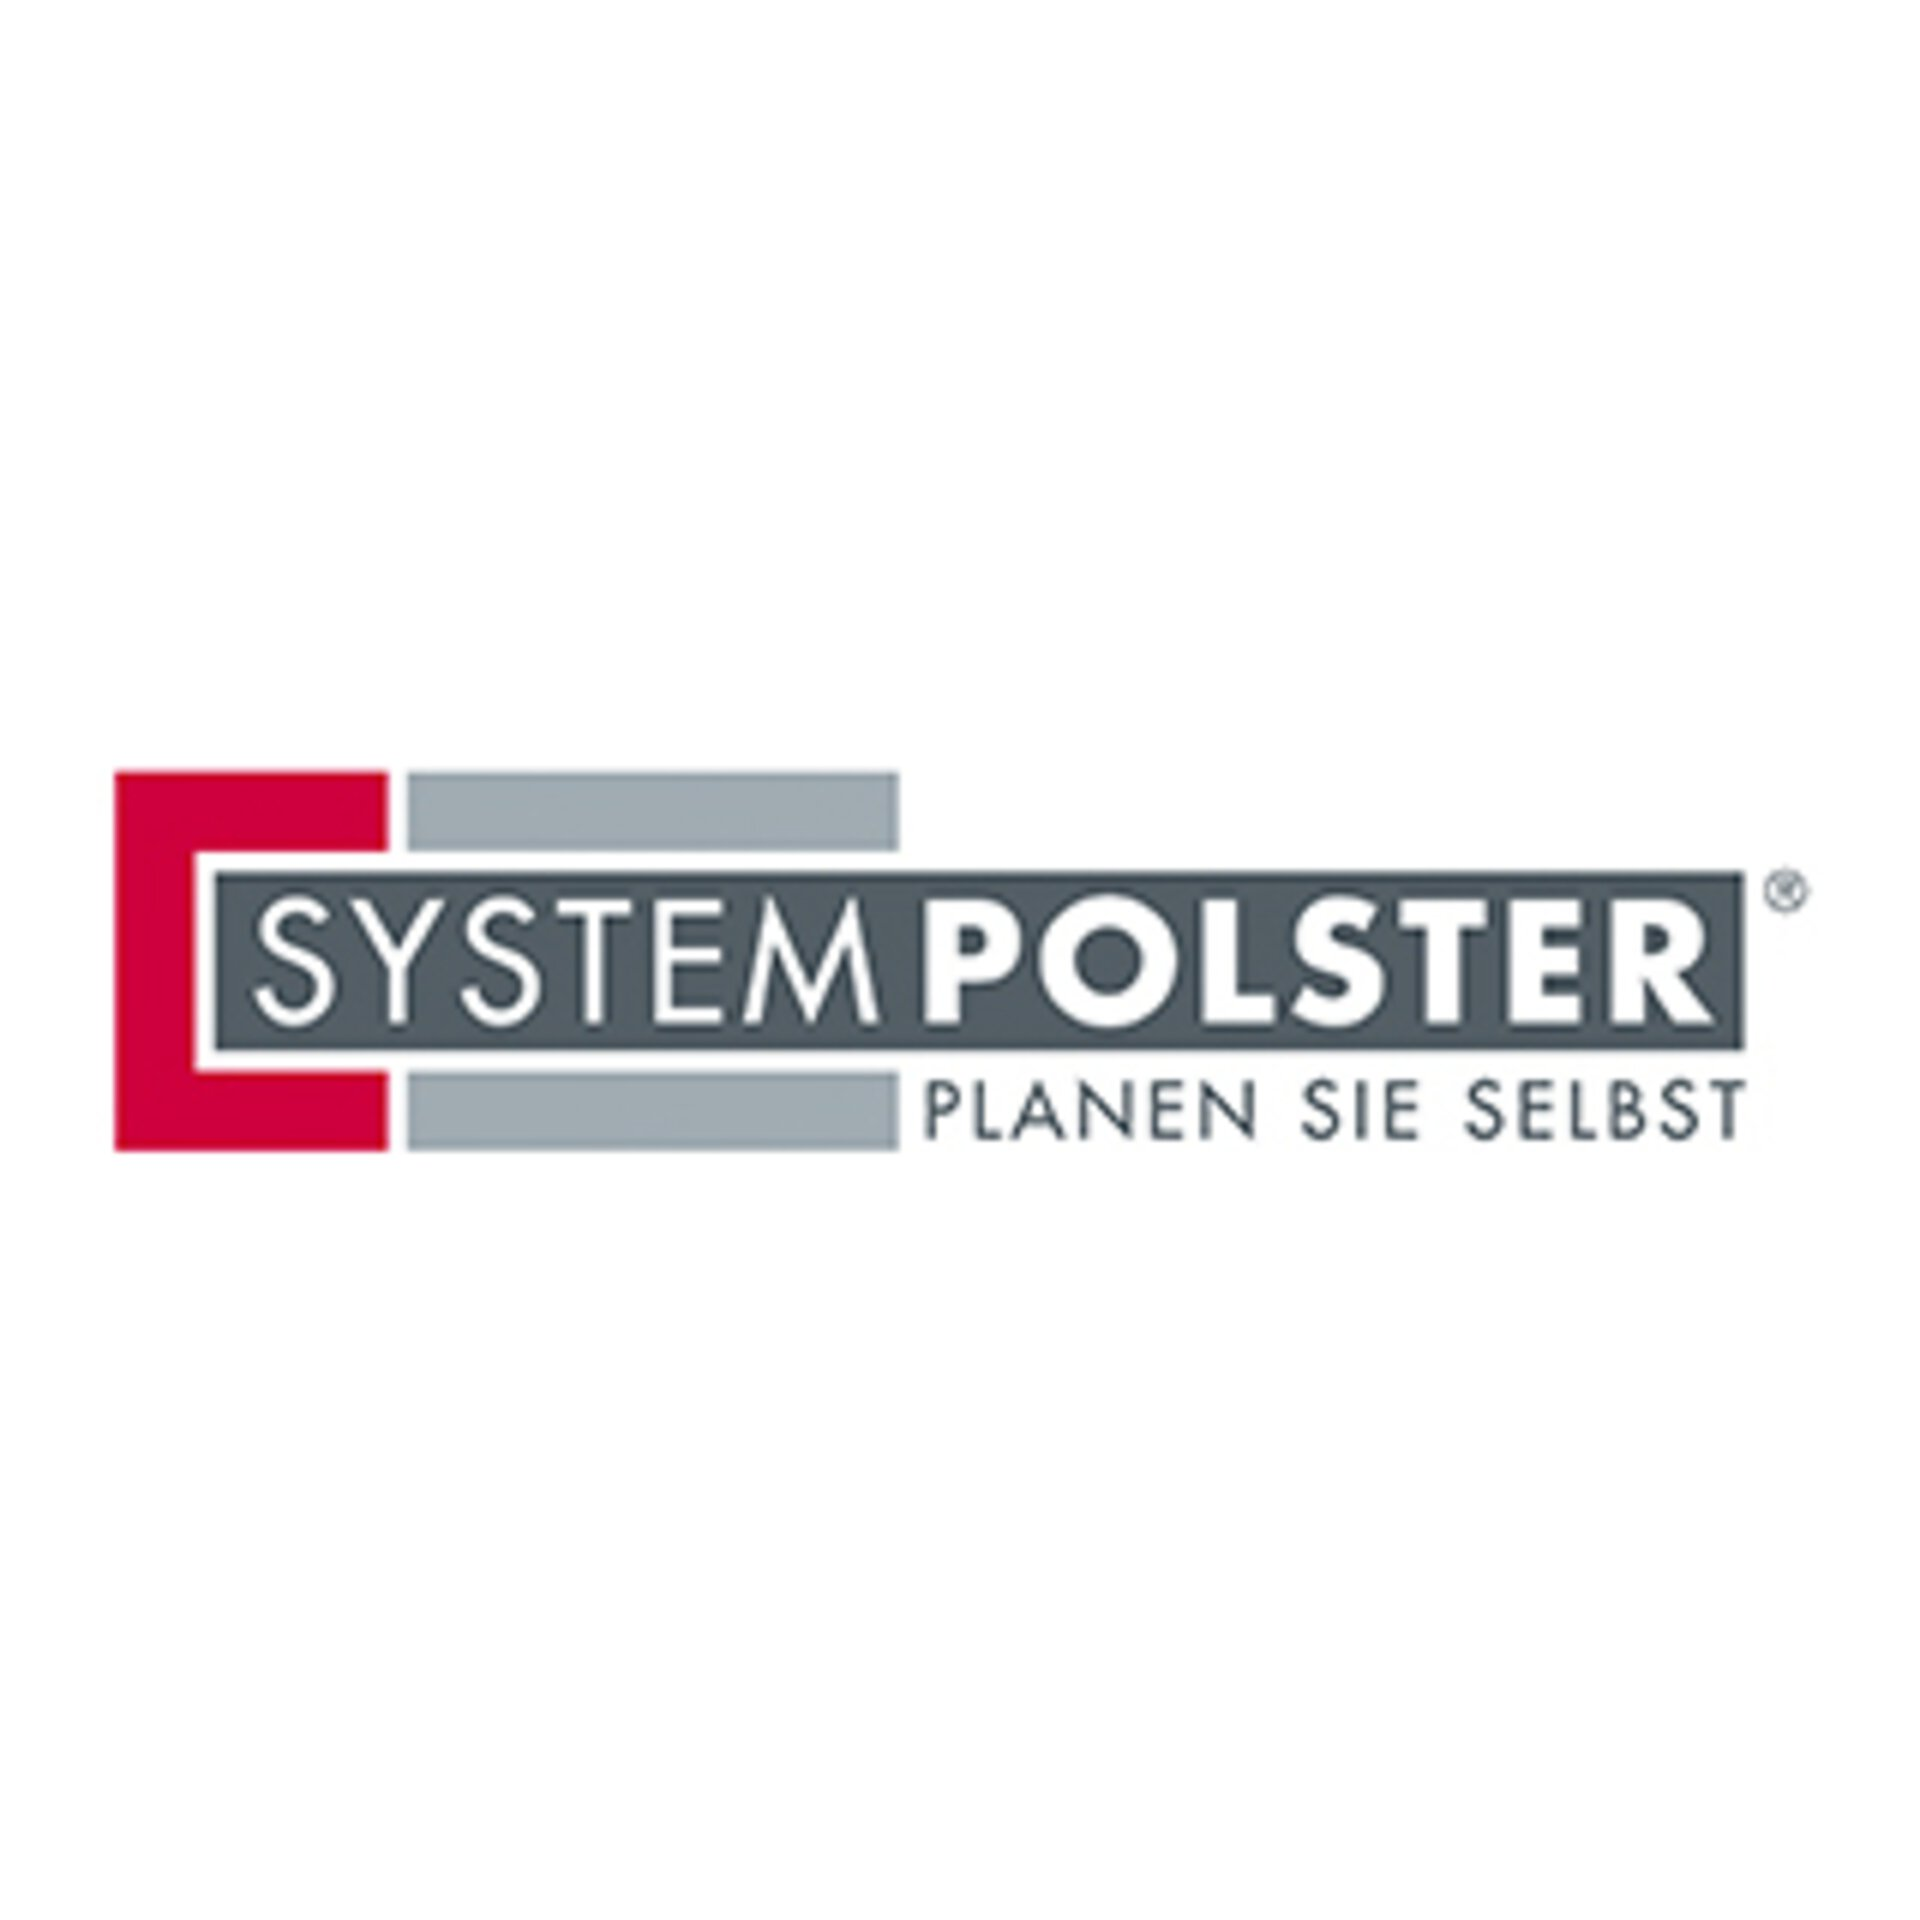 Systempolster